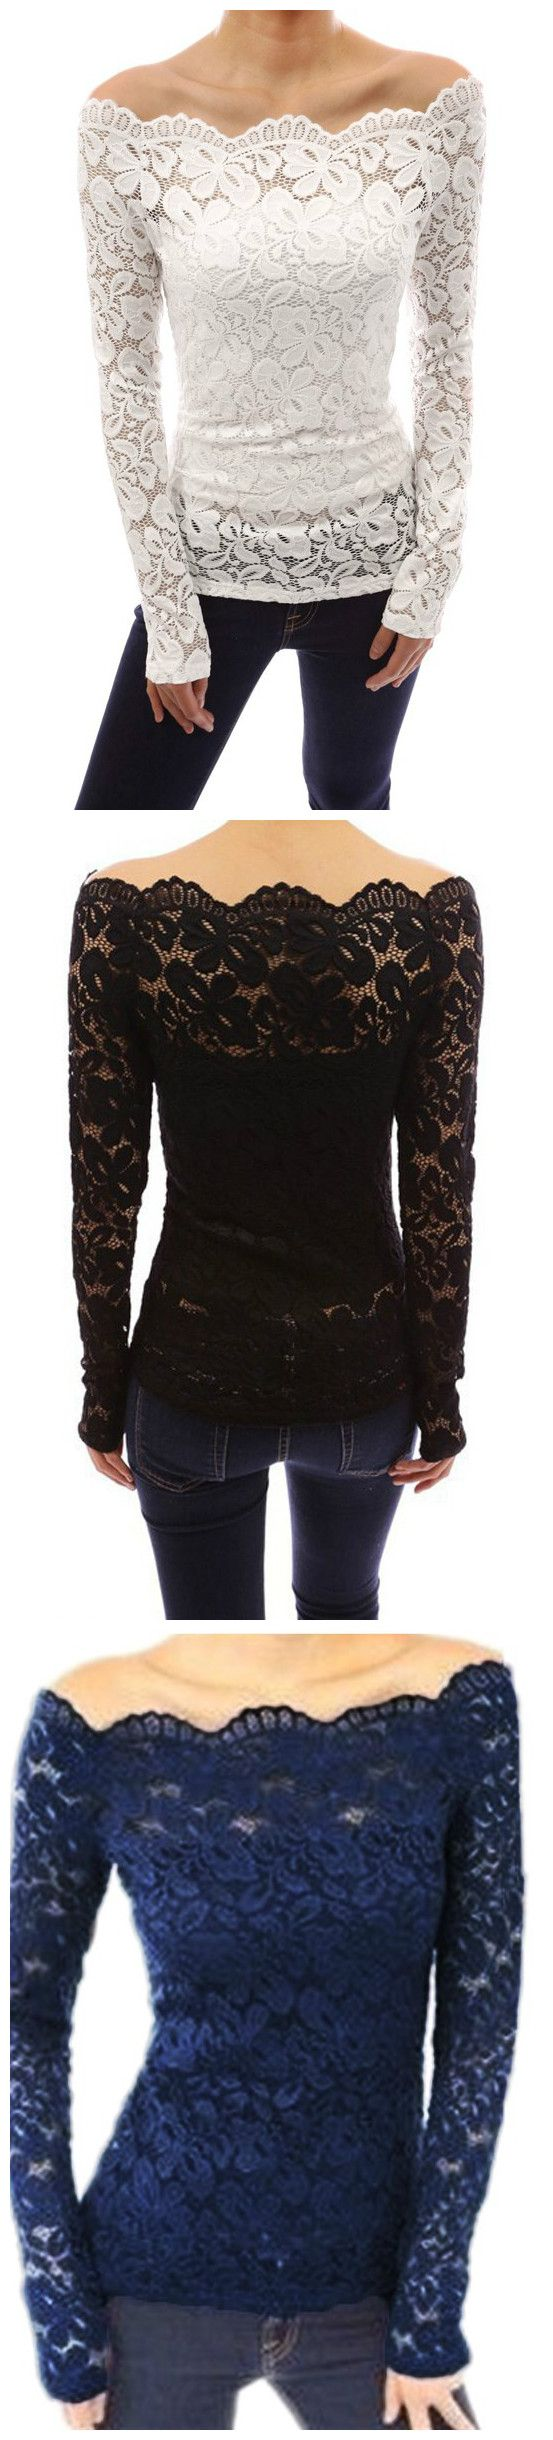 Go pretty with this delicate lace top that features a long sleeve and boat neck. The top is off shoulder and can be paired with jeans or leggings for a stylish look. More deals from Minchic.com